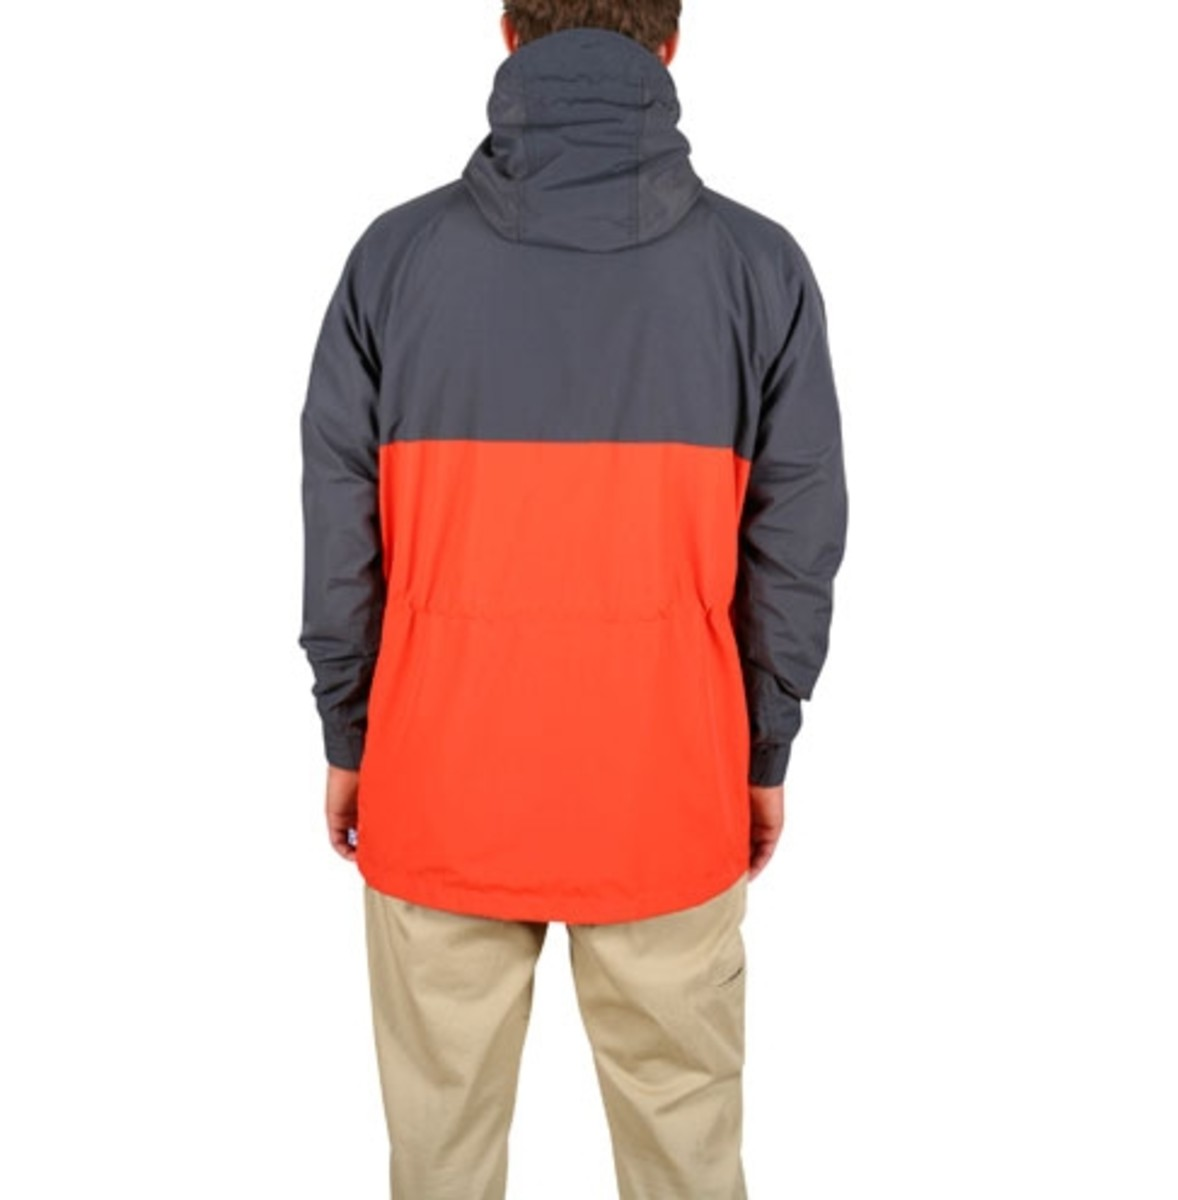 Penfield SS2011 Jackets 22